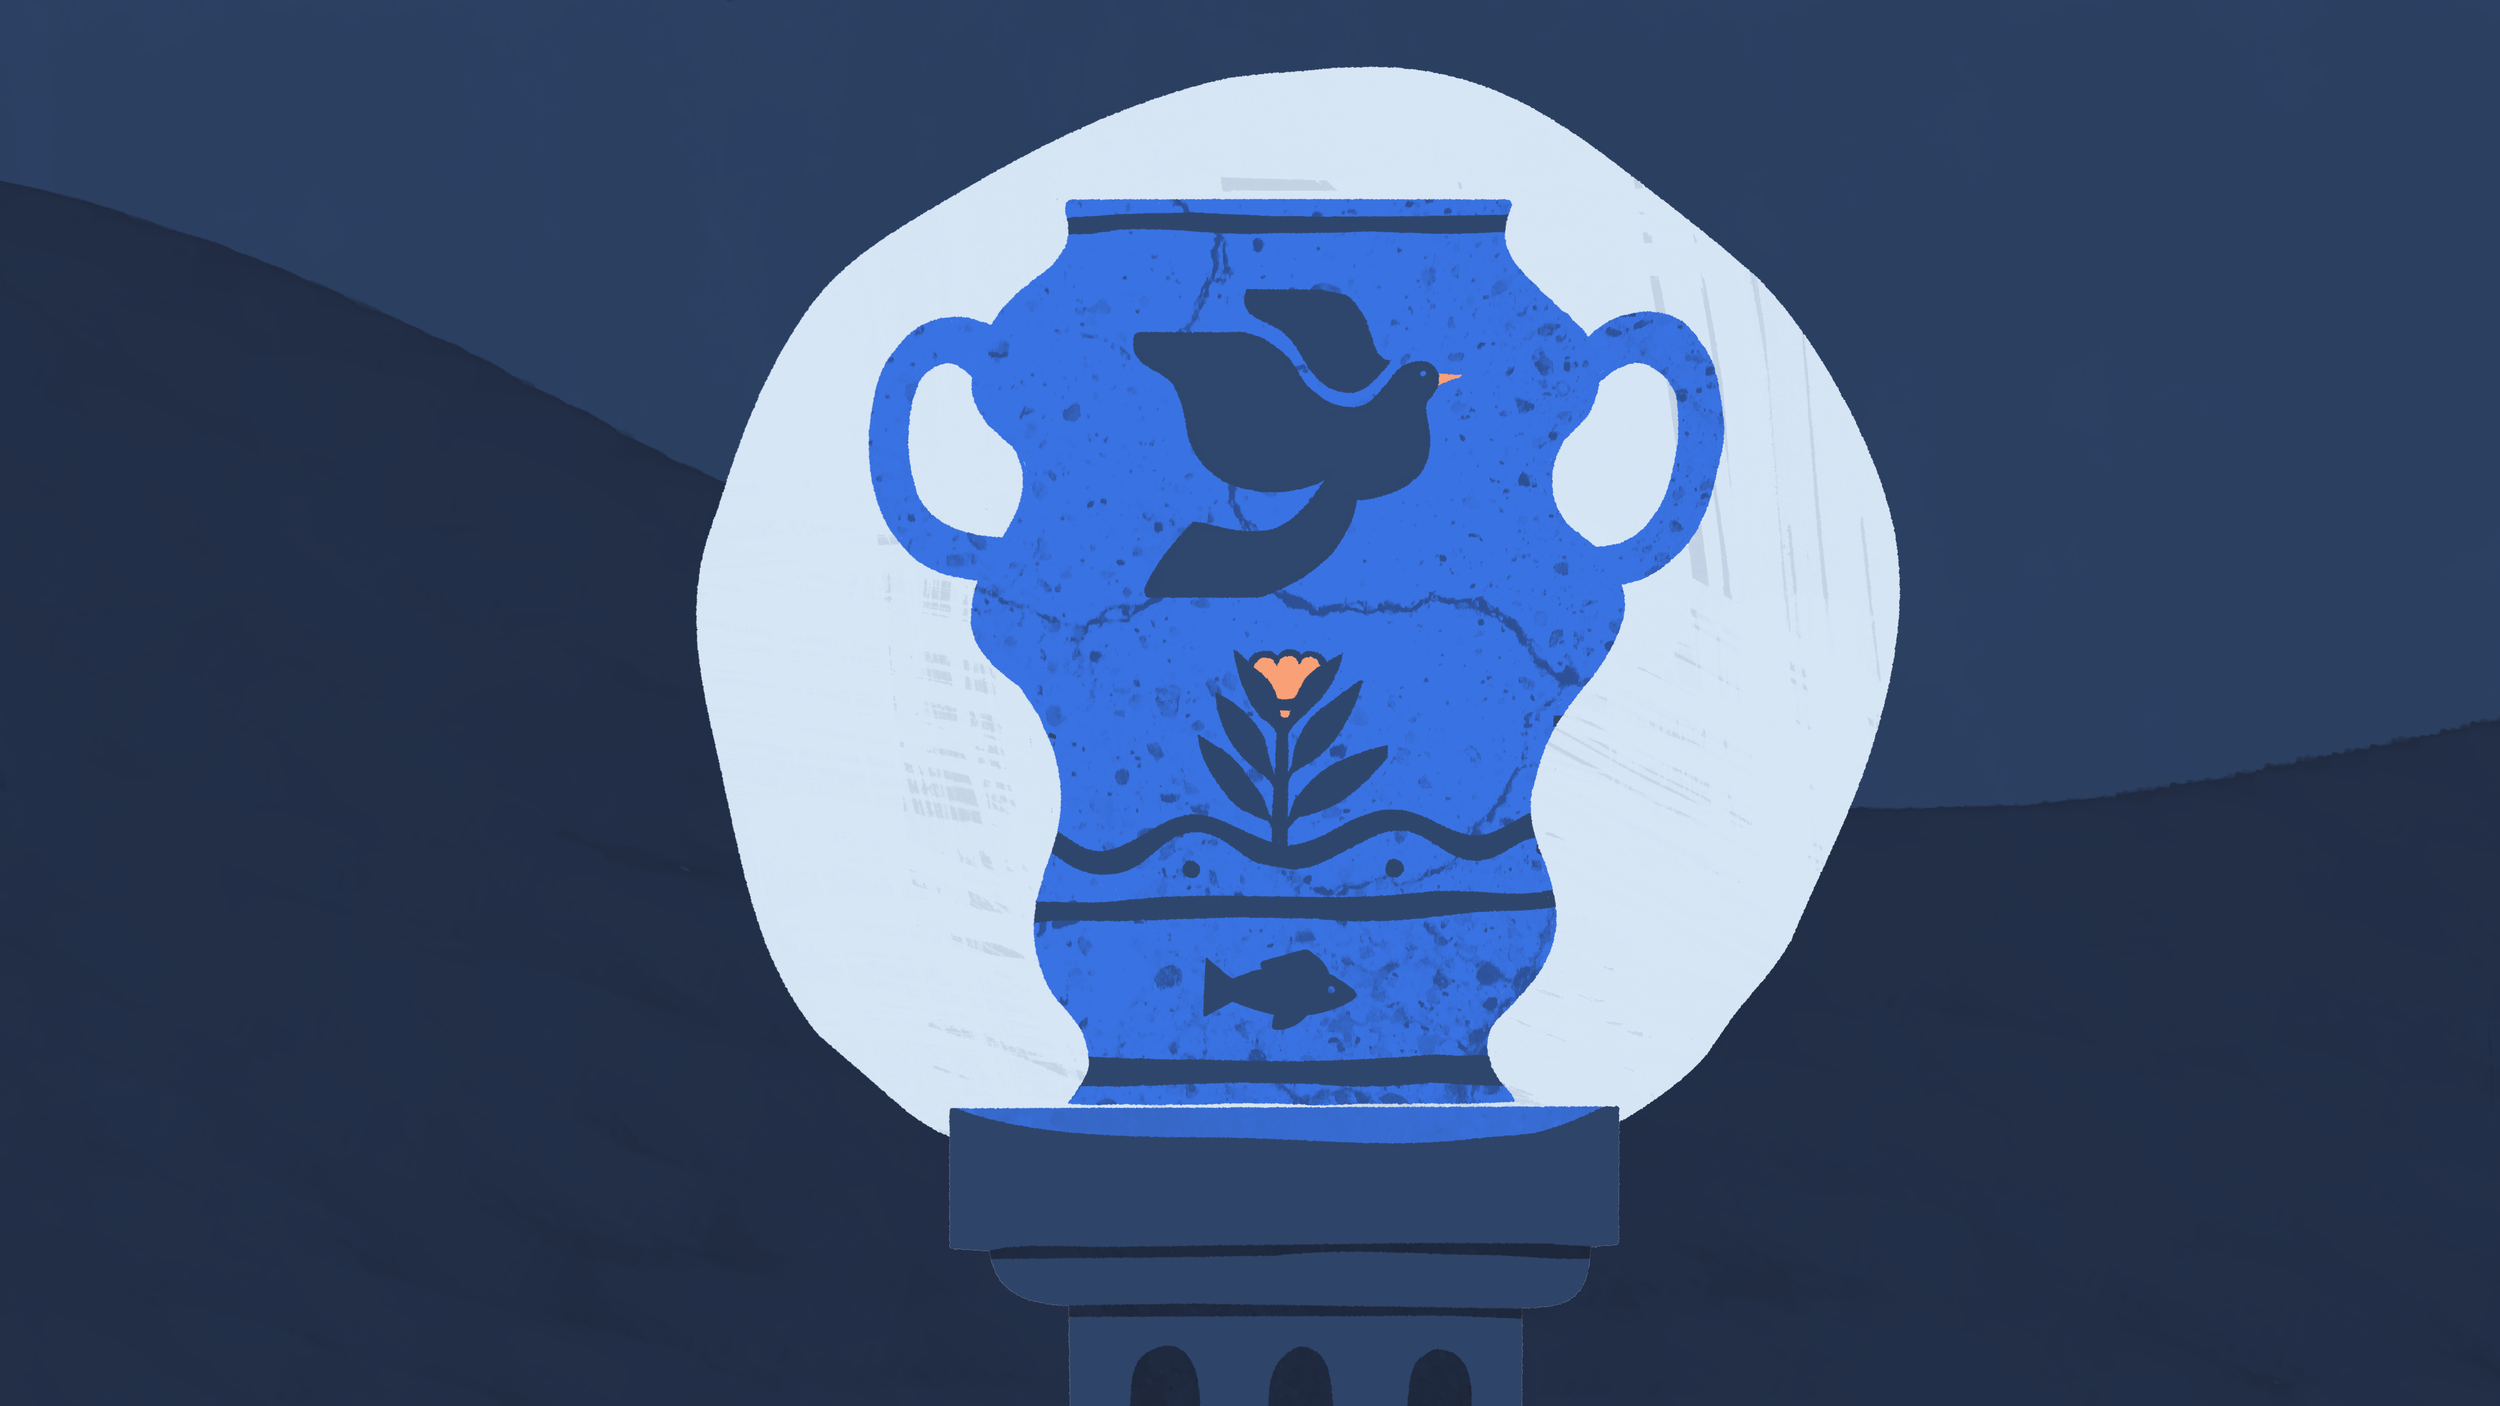 sh_030_Night-Vase.png